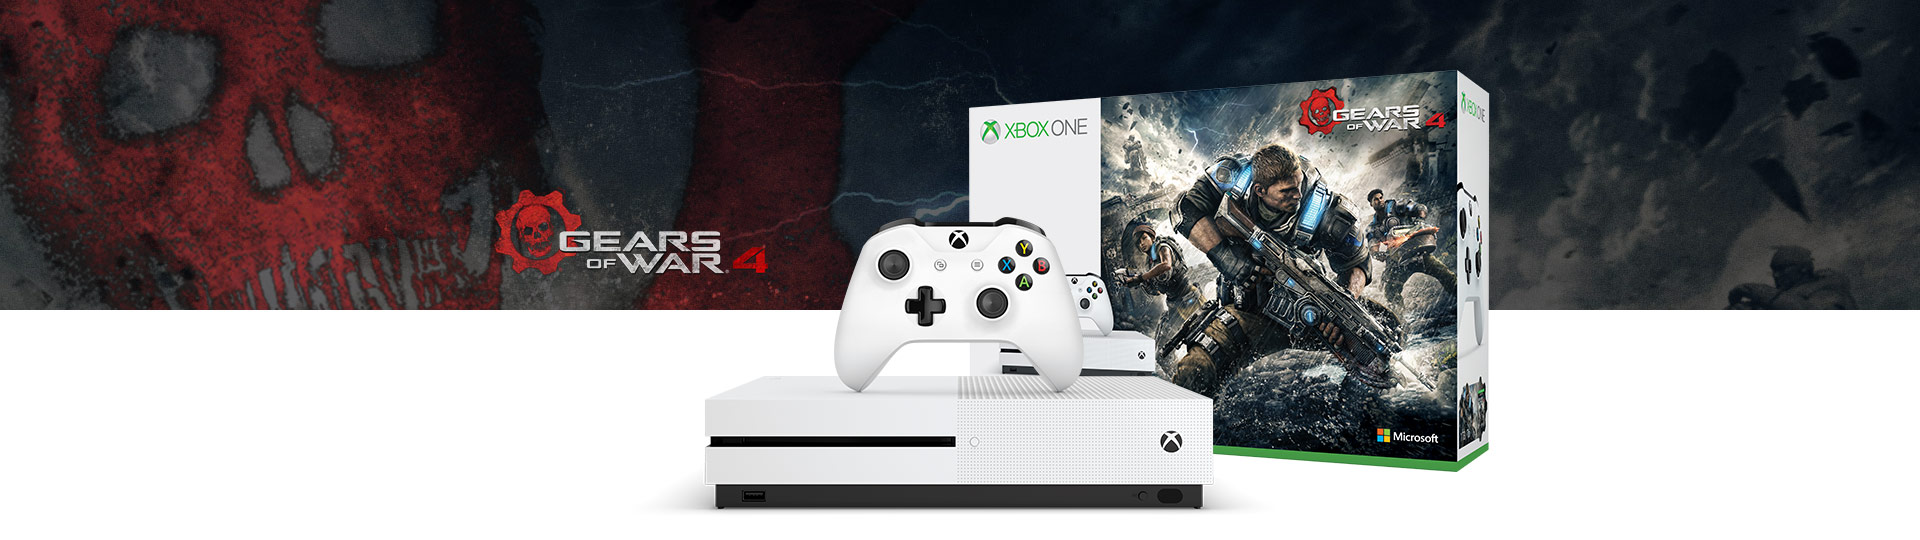 Paquete Gears of War para Xbox One S (500GB)